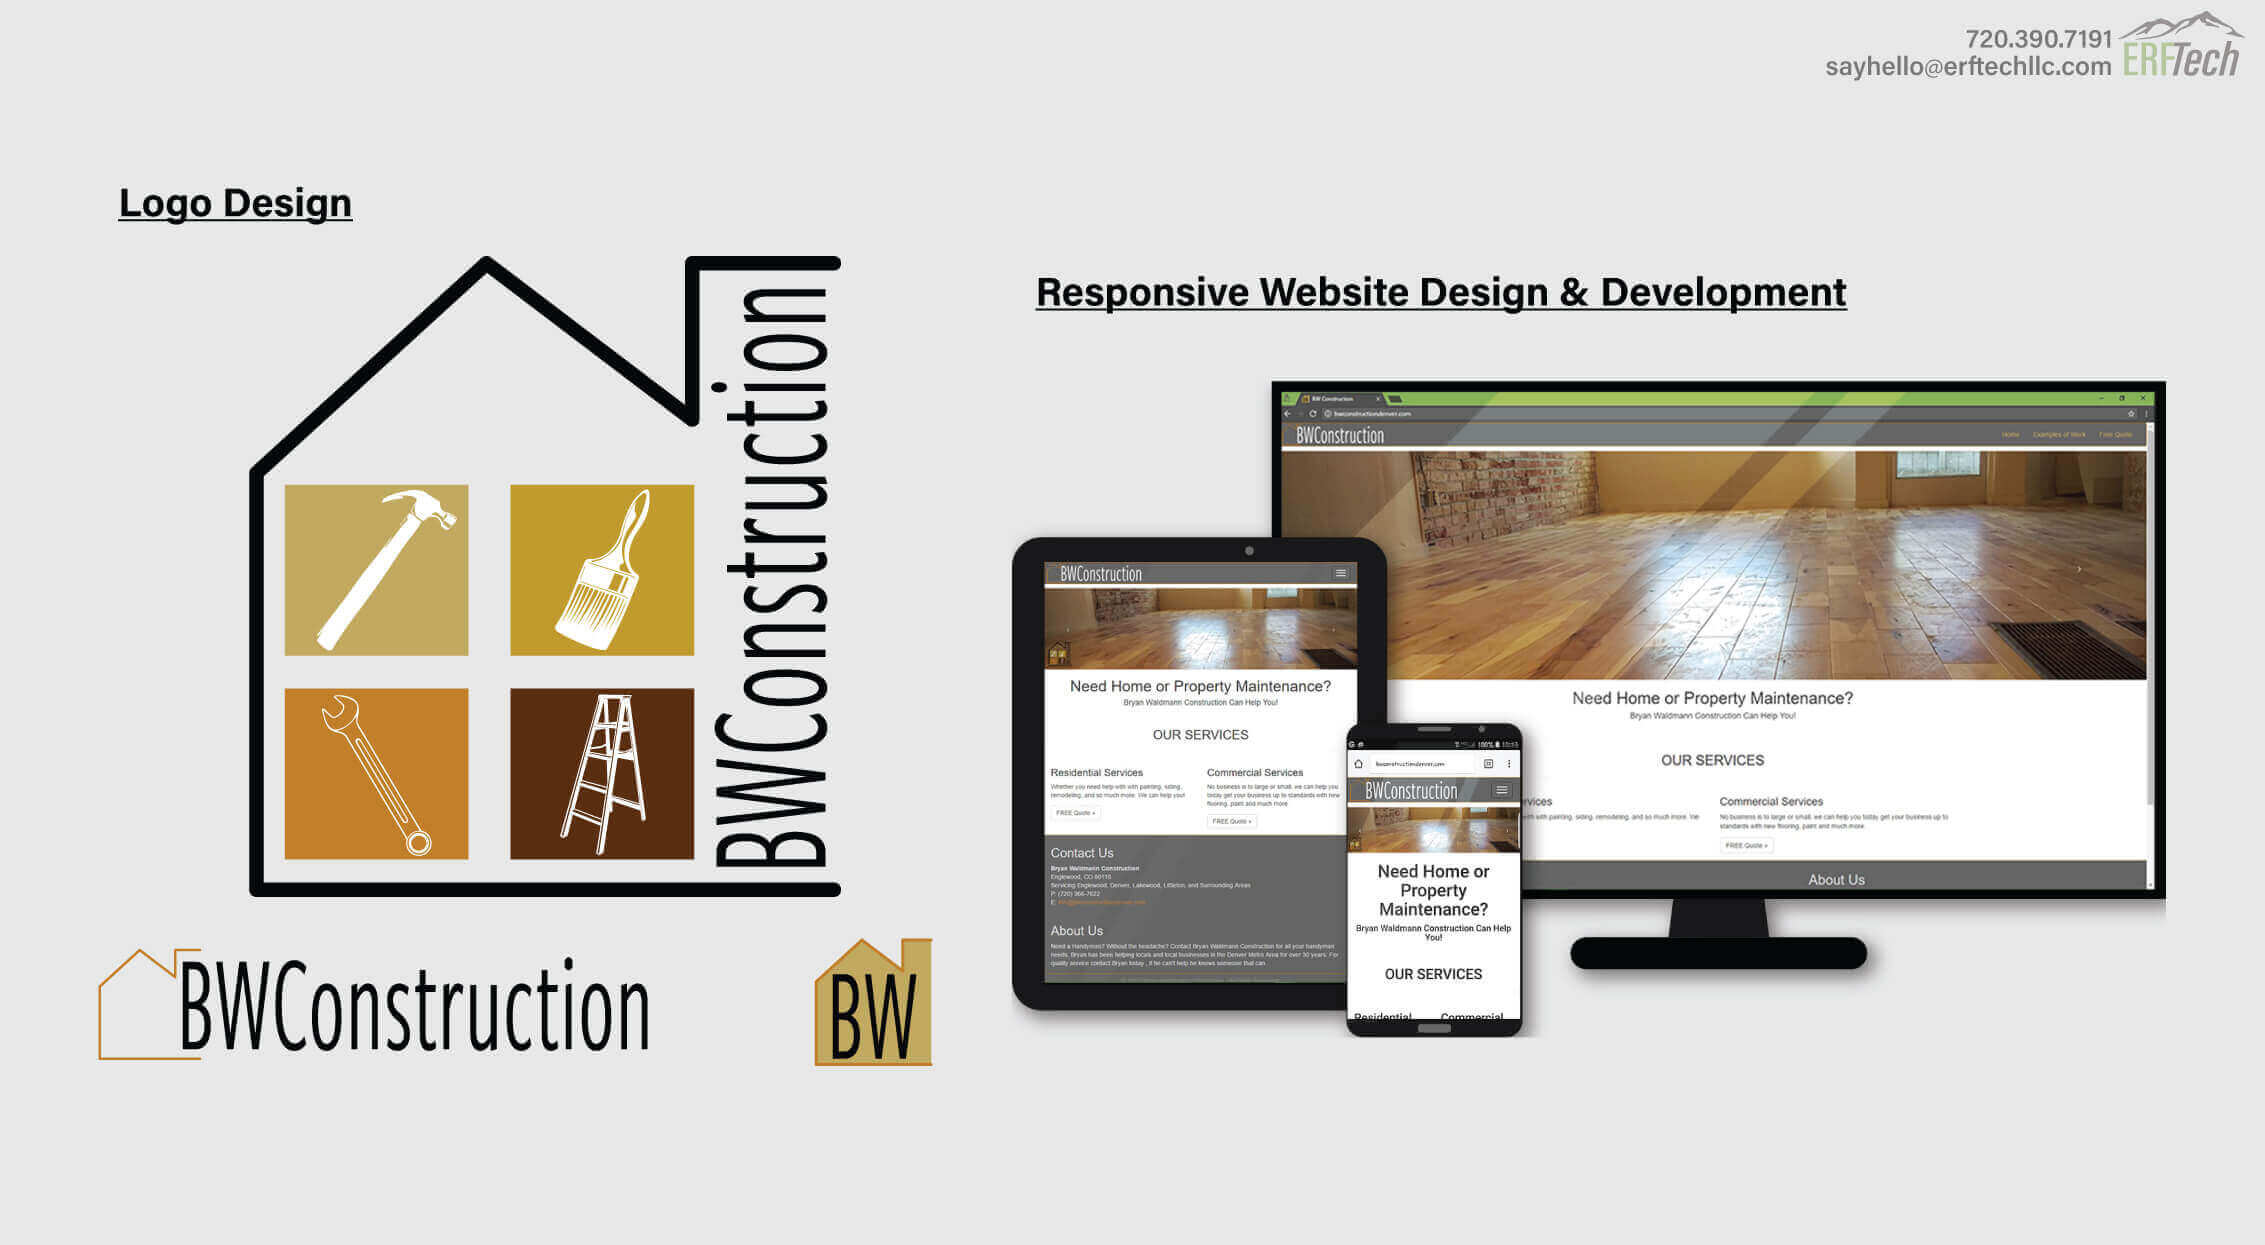 Full-Service Marketing for BW Construction in Denver, CO